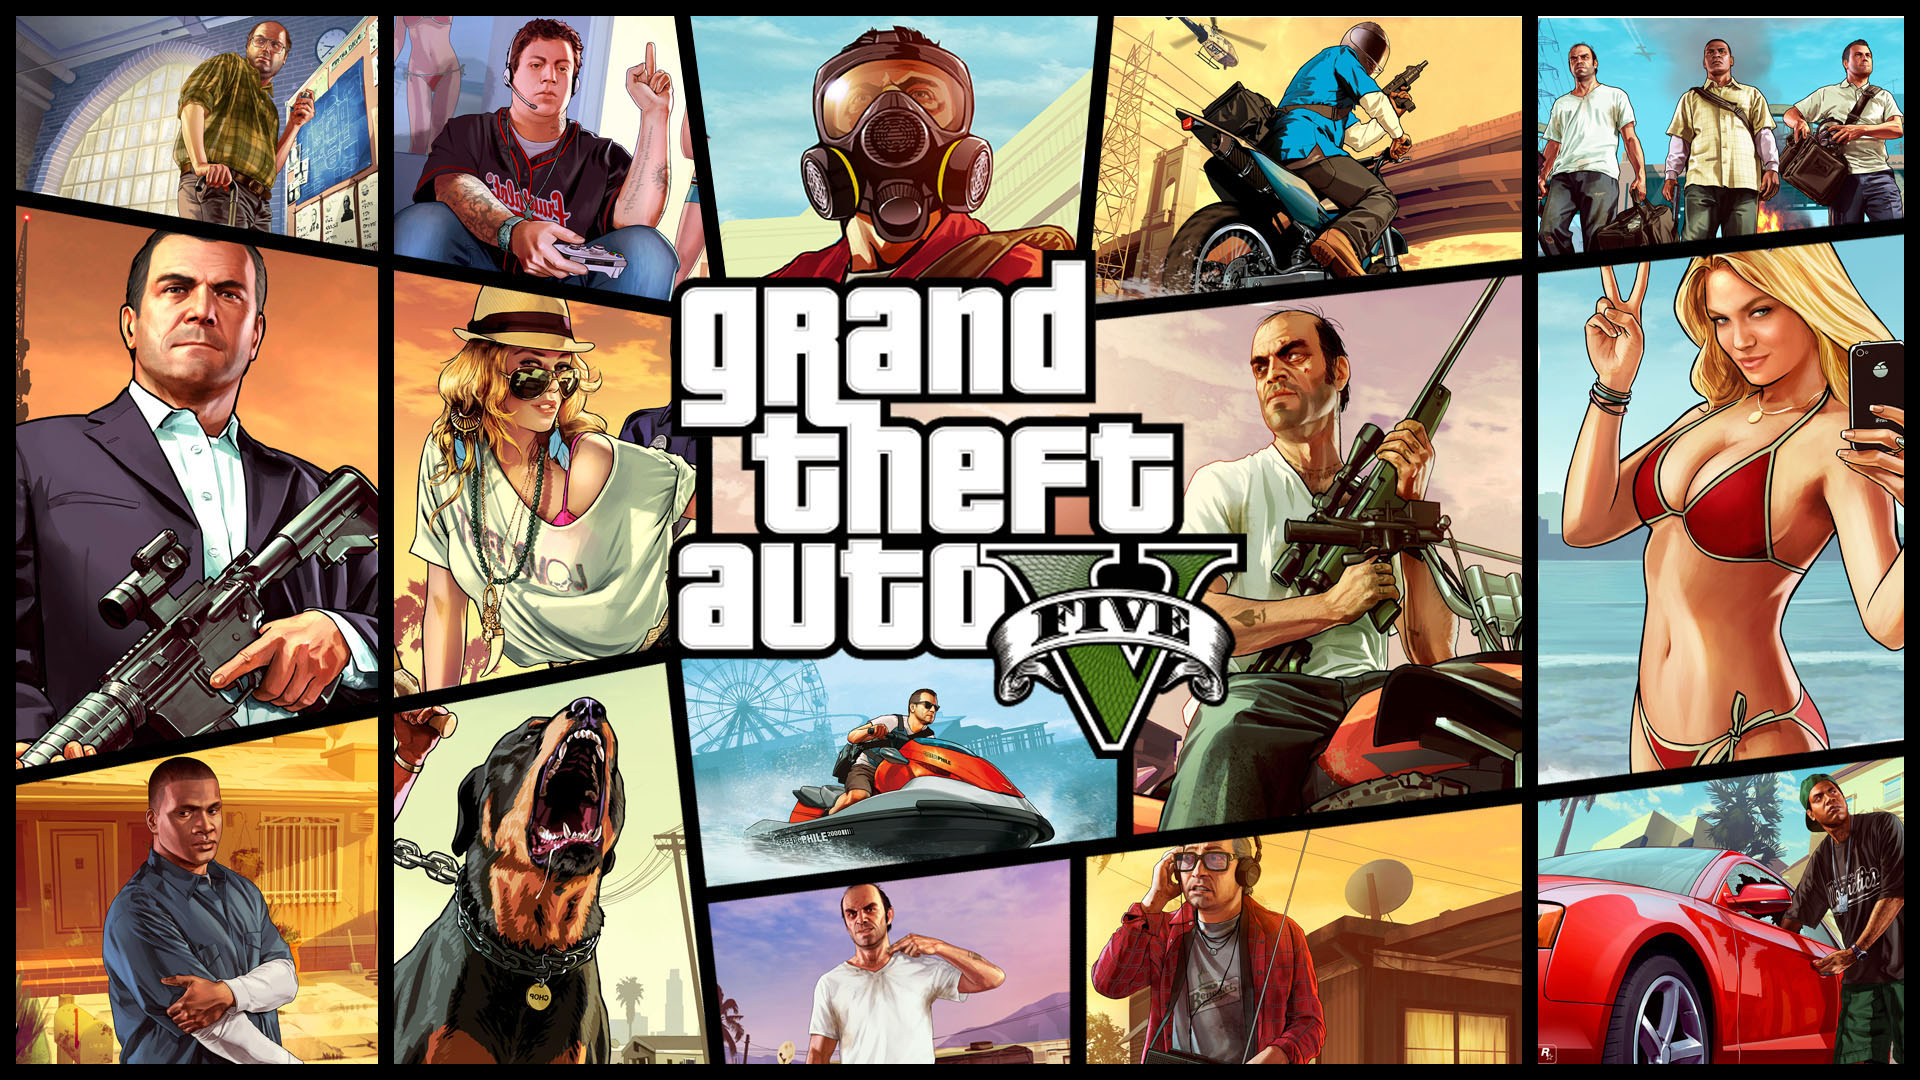 Grand Theft Auto V GTA 5 games Wallpapers 16jpg 1920x1080